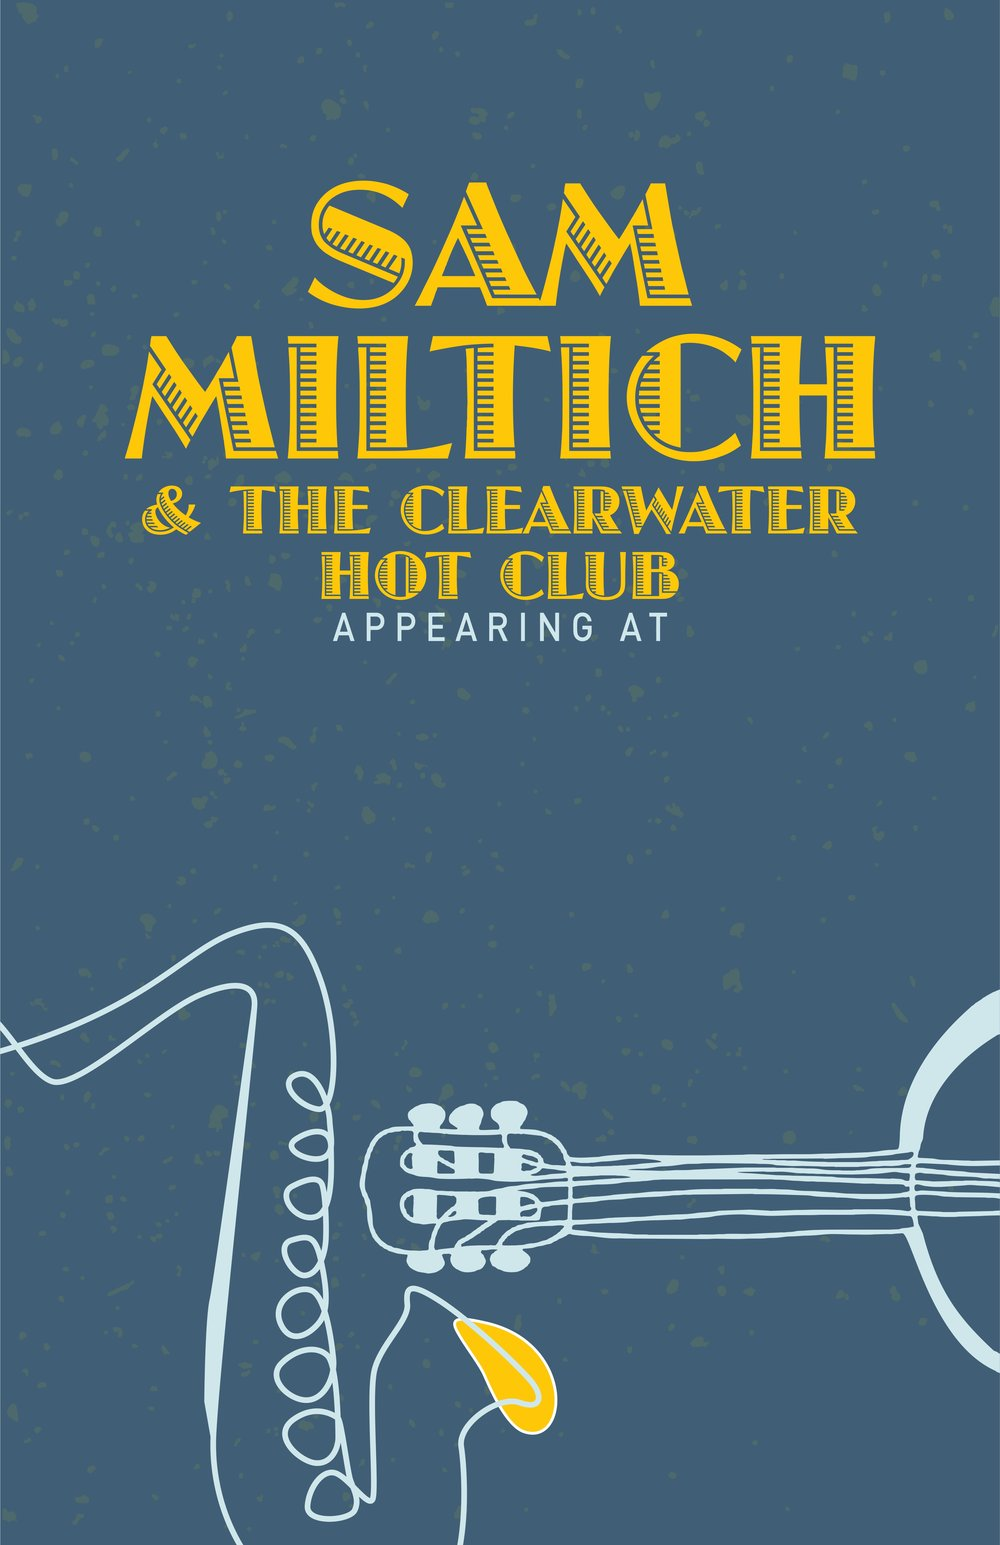 miltich and the clearwater hot club.jpg